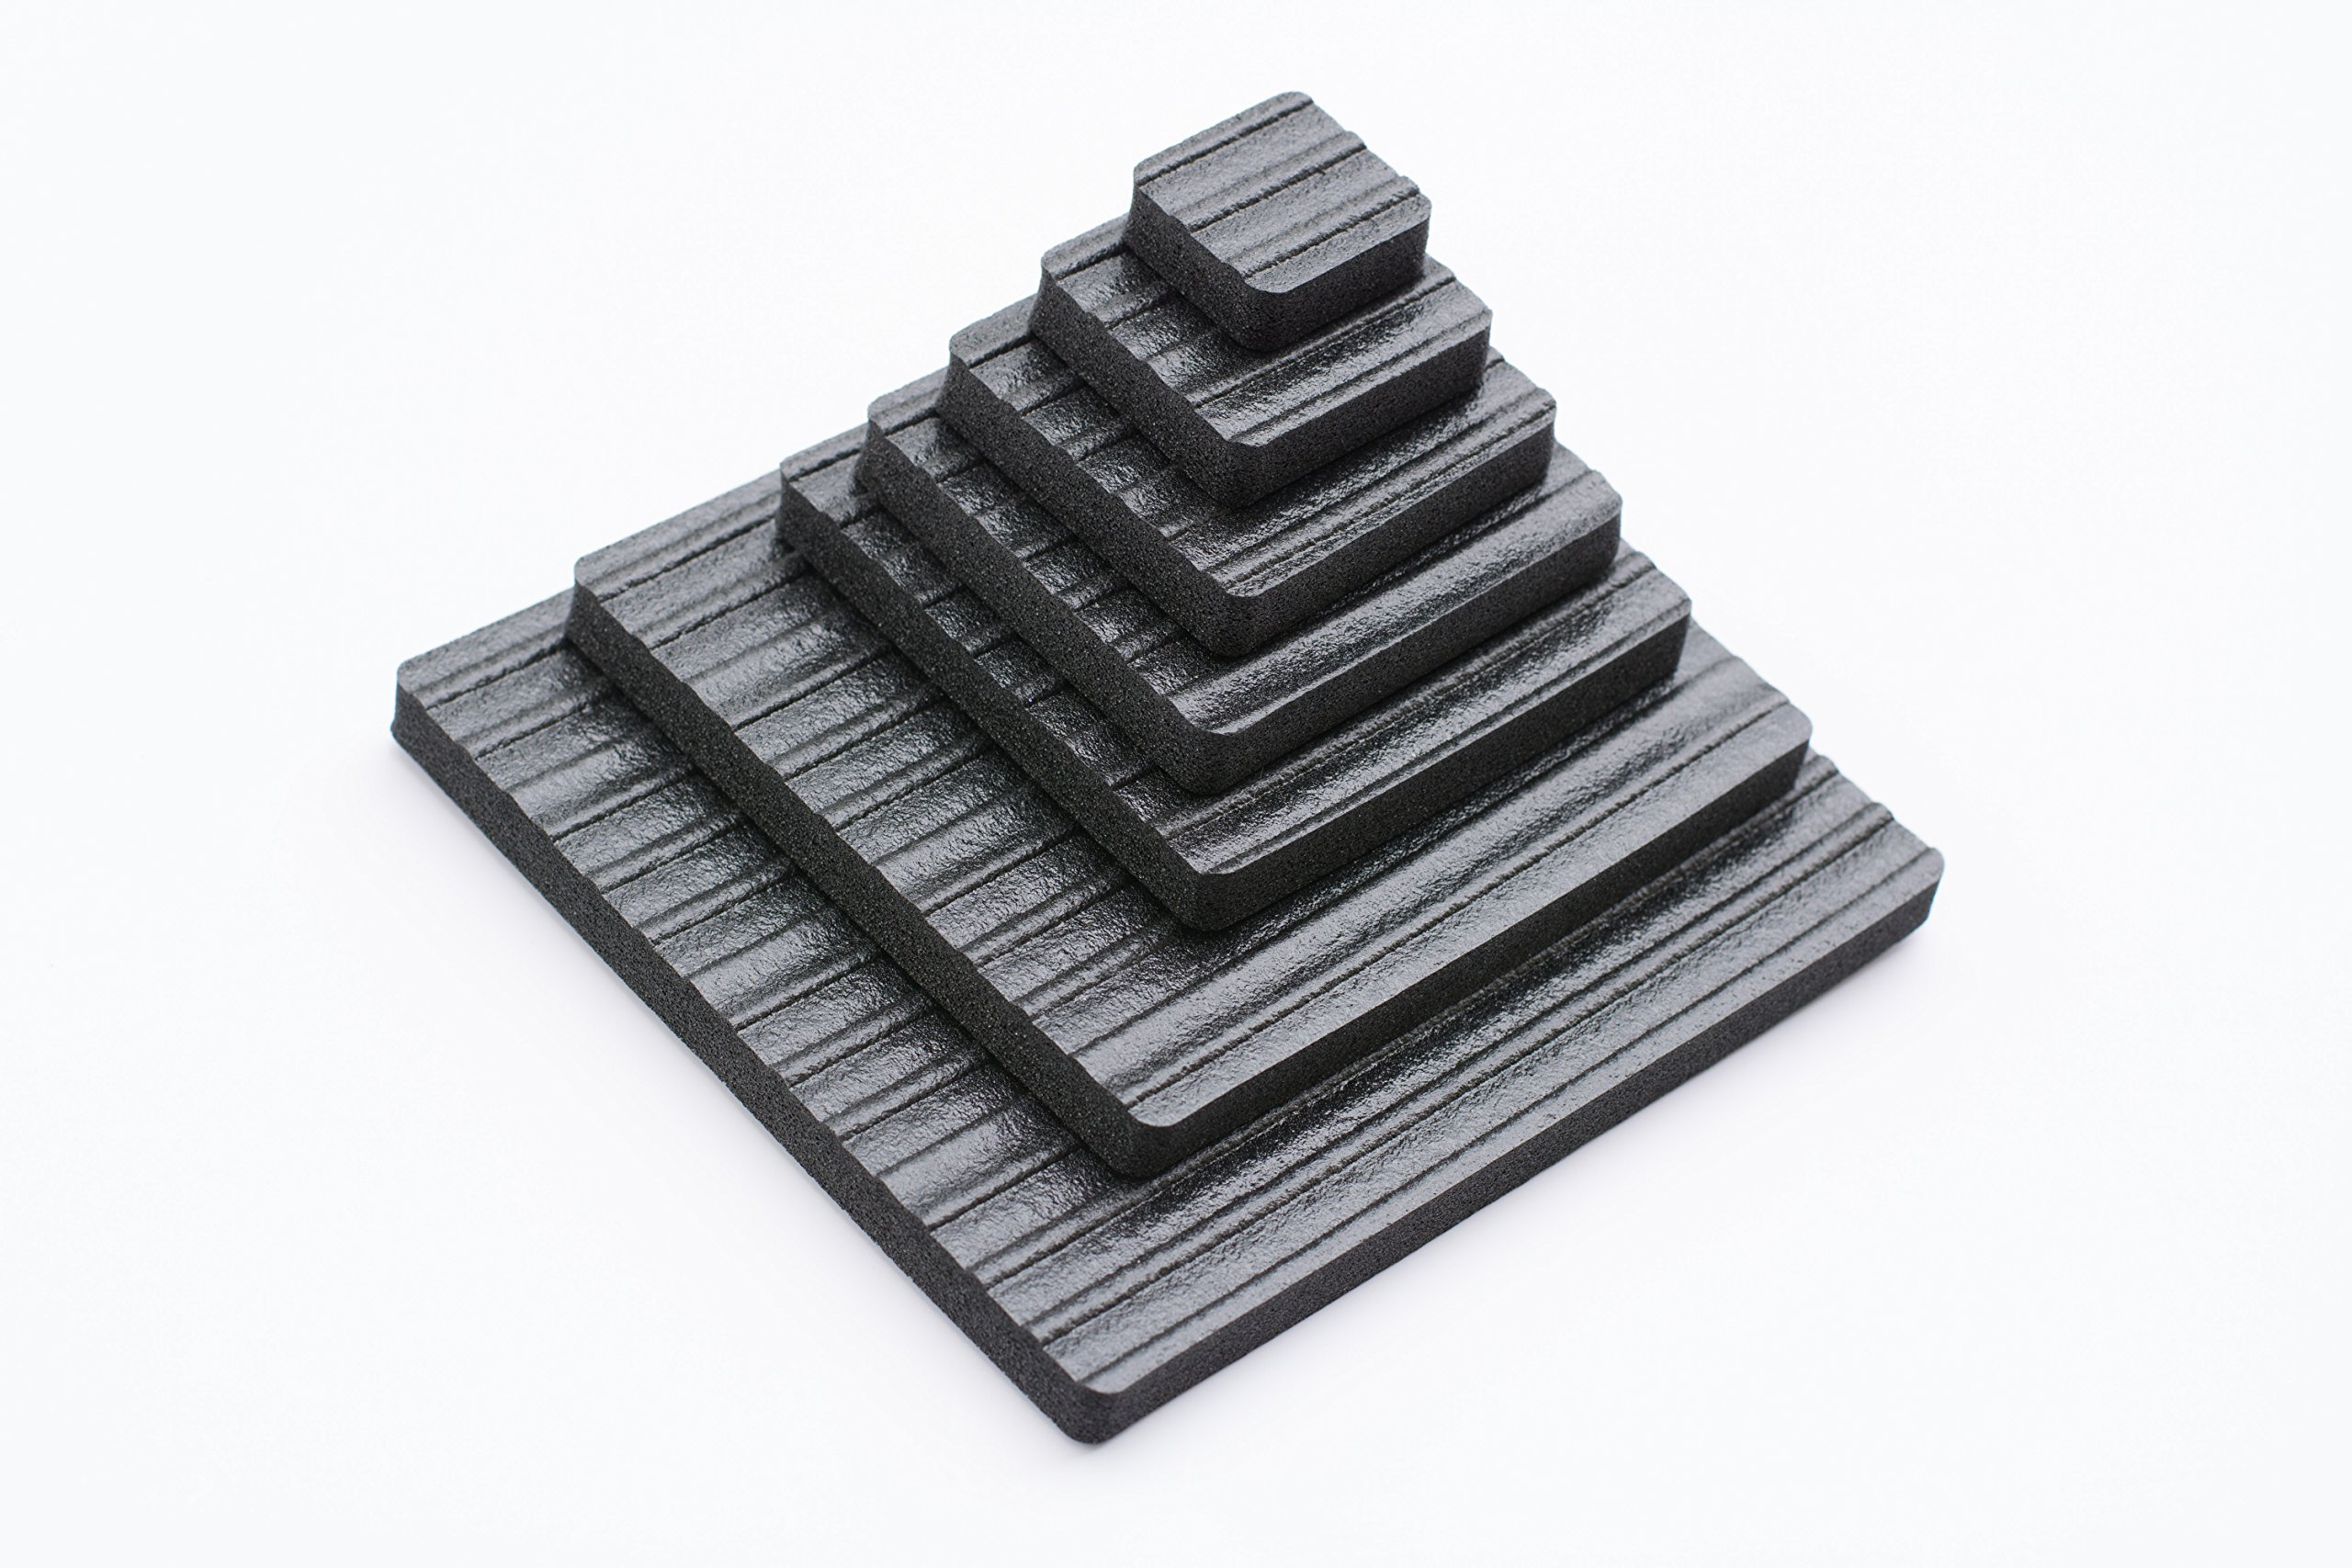 Lil Grippers Square Furniture Pads - Keep Furniture Where it Belongs! (4 Inch) 4 Pack - QUICK SHIP by Lil Grippers (Image #1)